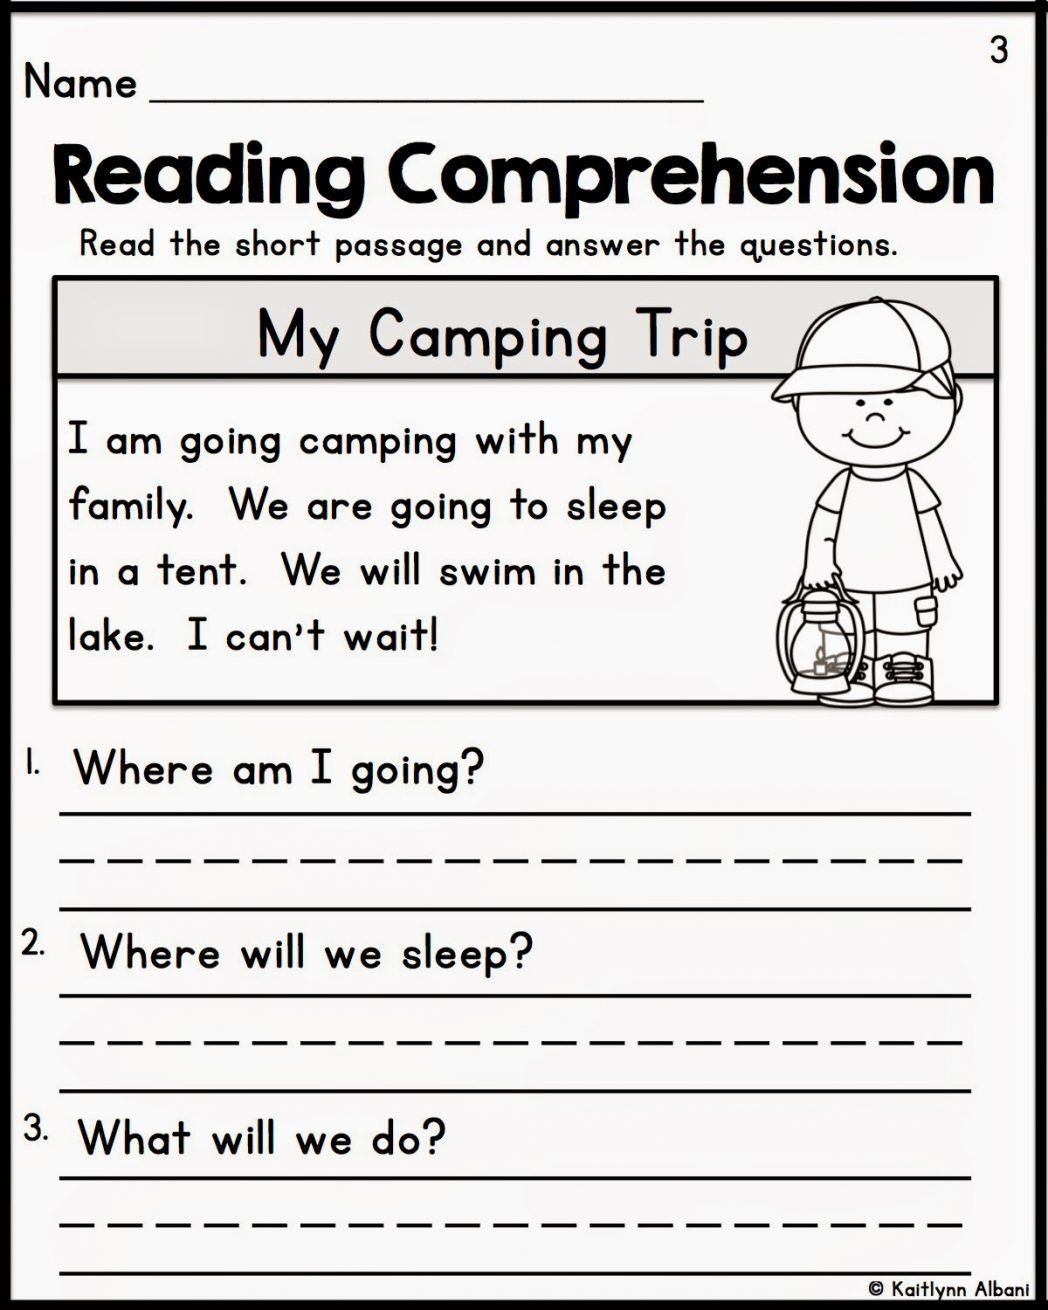 Comprehension Worksheets for First Grade Reading Prehension Worksheets for First Grade Students 1